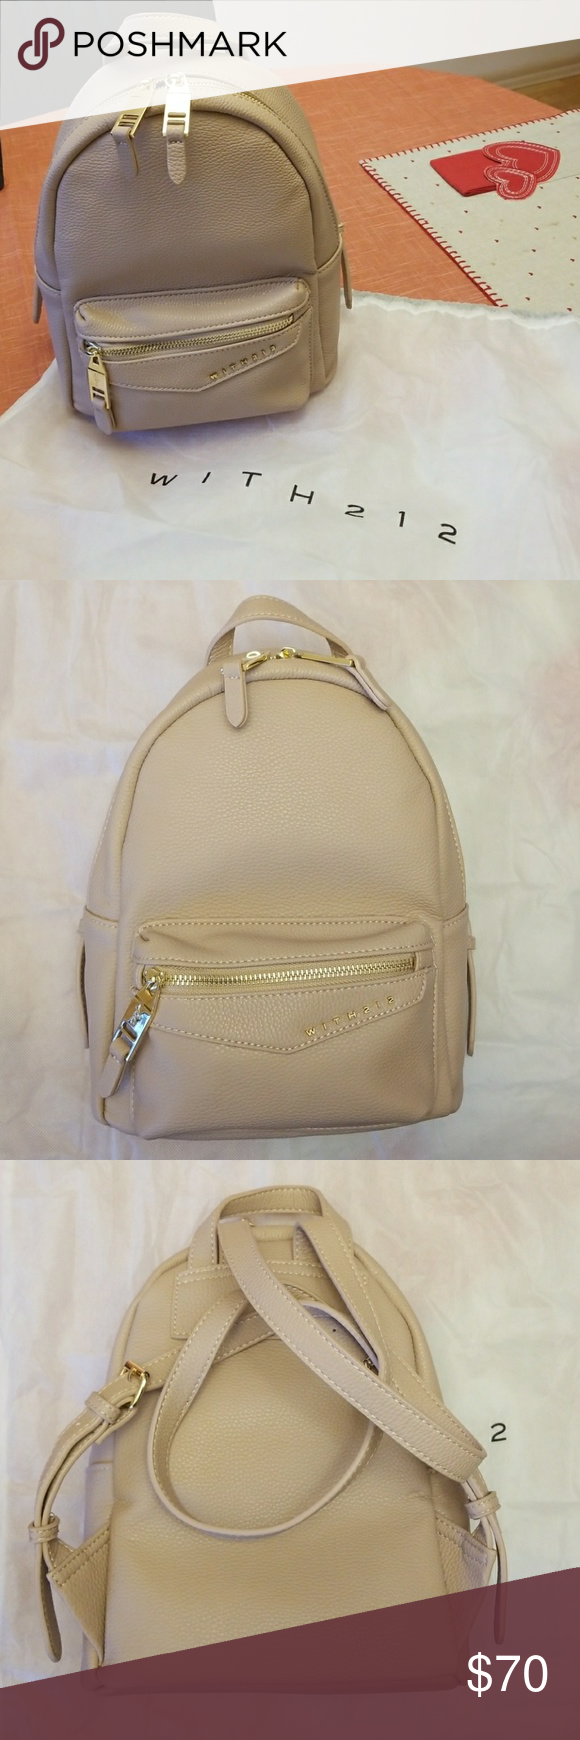 07270f3113 WITH212 Bleecker mini backpack Brand new without tags WITH212 vegan pebble  leather Bleecker mini backpack in